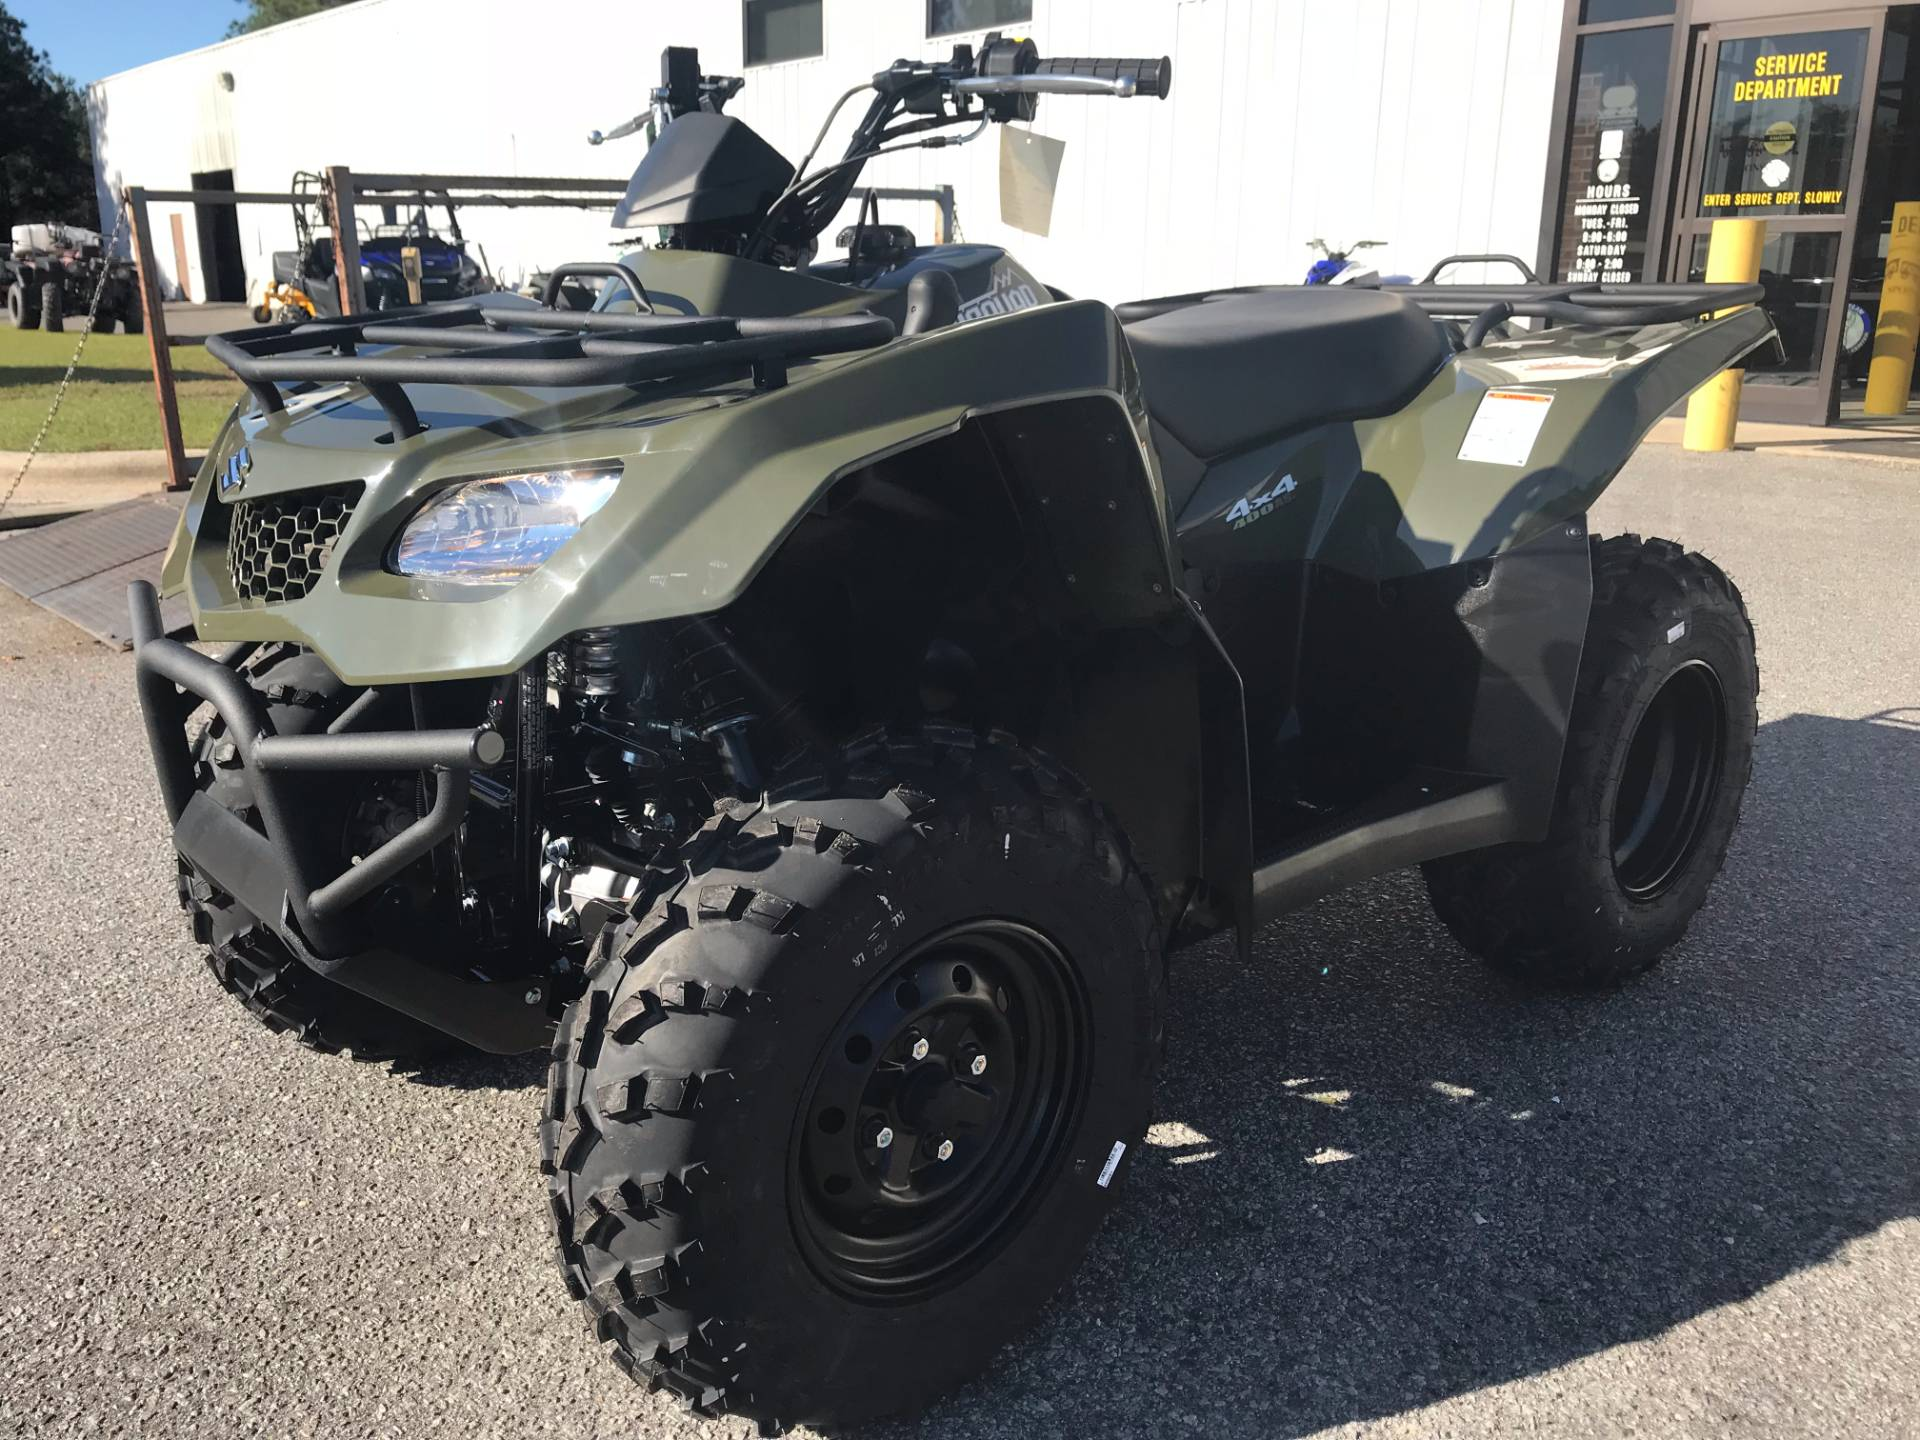 2018 Suzuki KingQuad 400ASi in Greenville, North Carolina - Photo 5